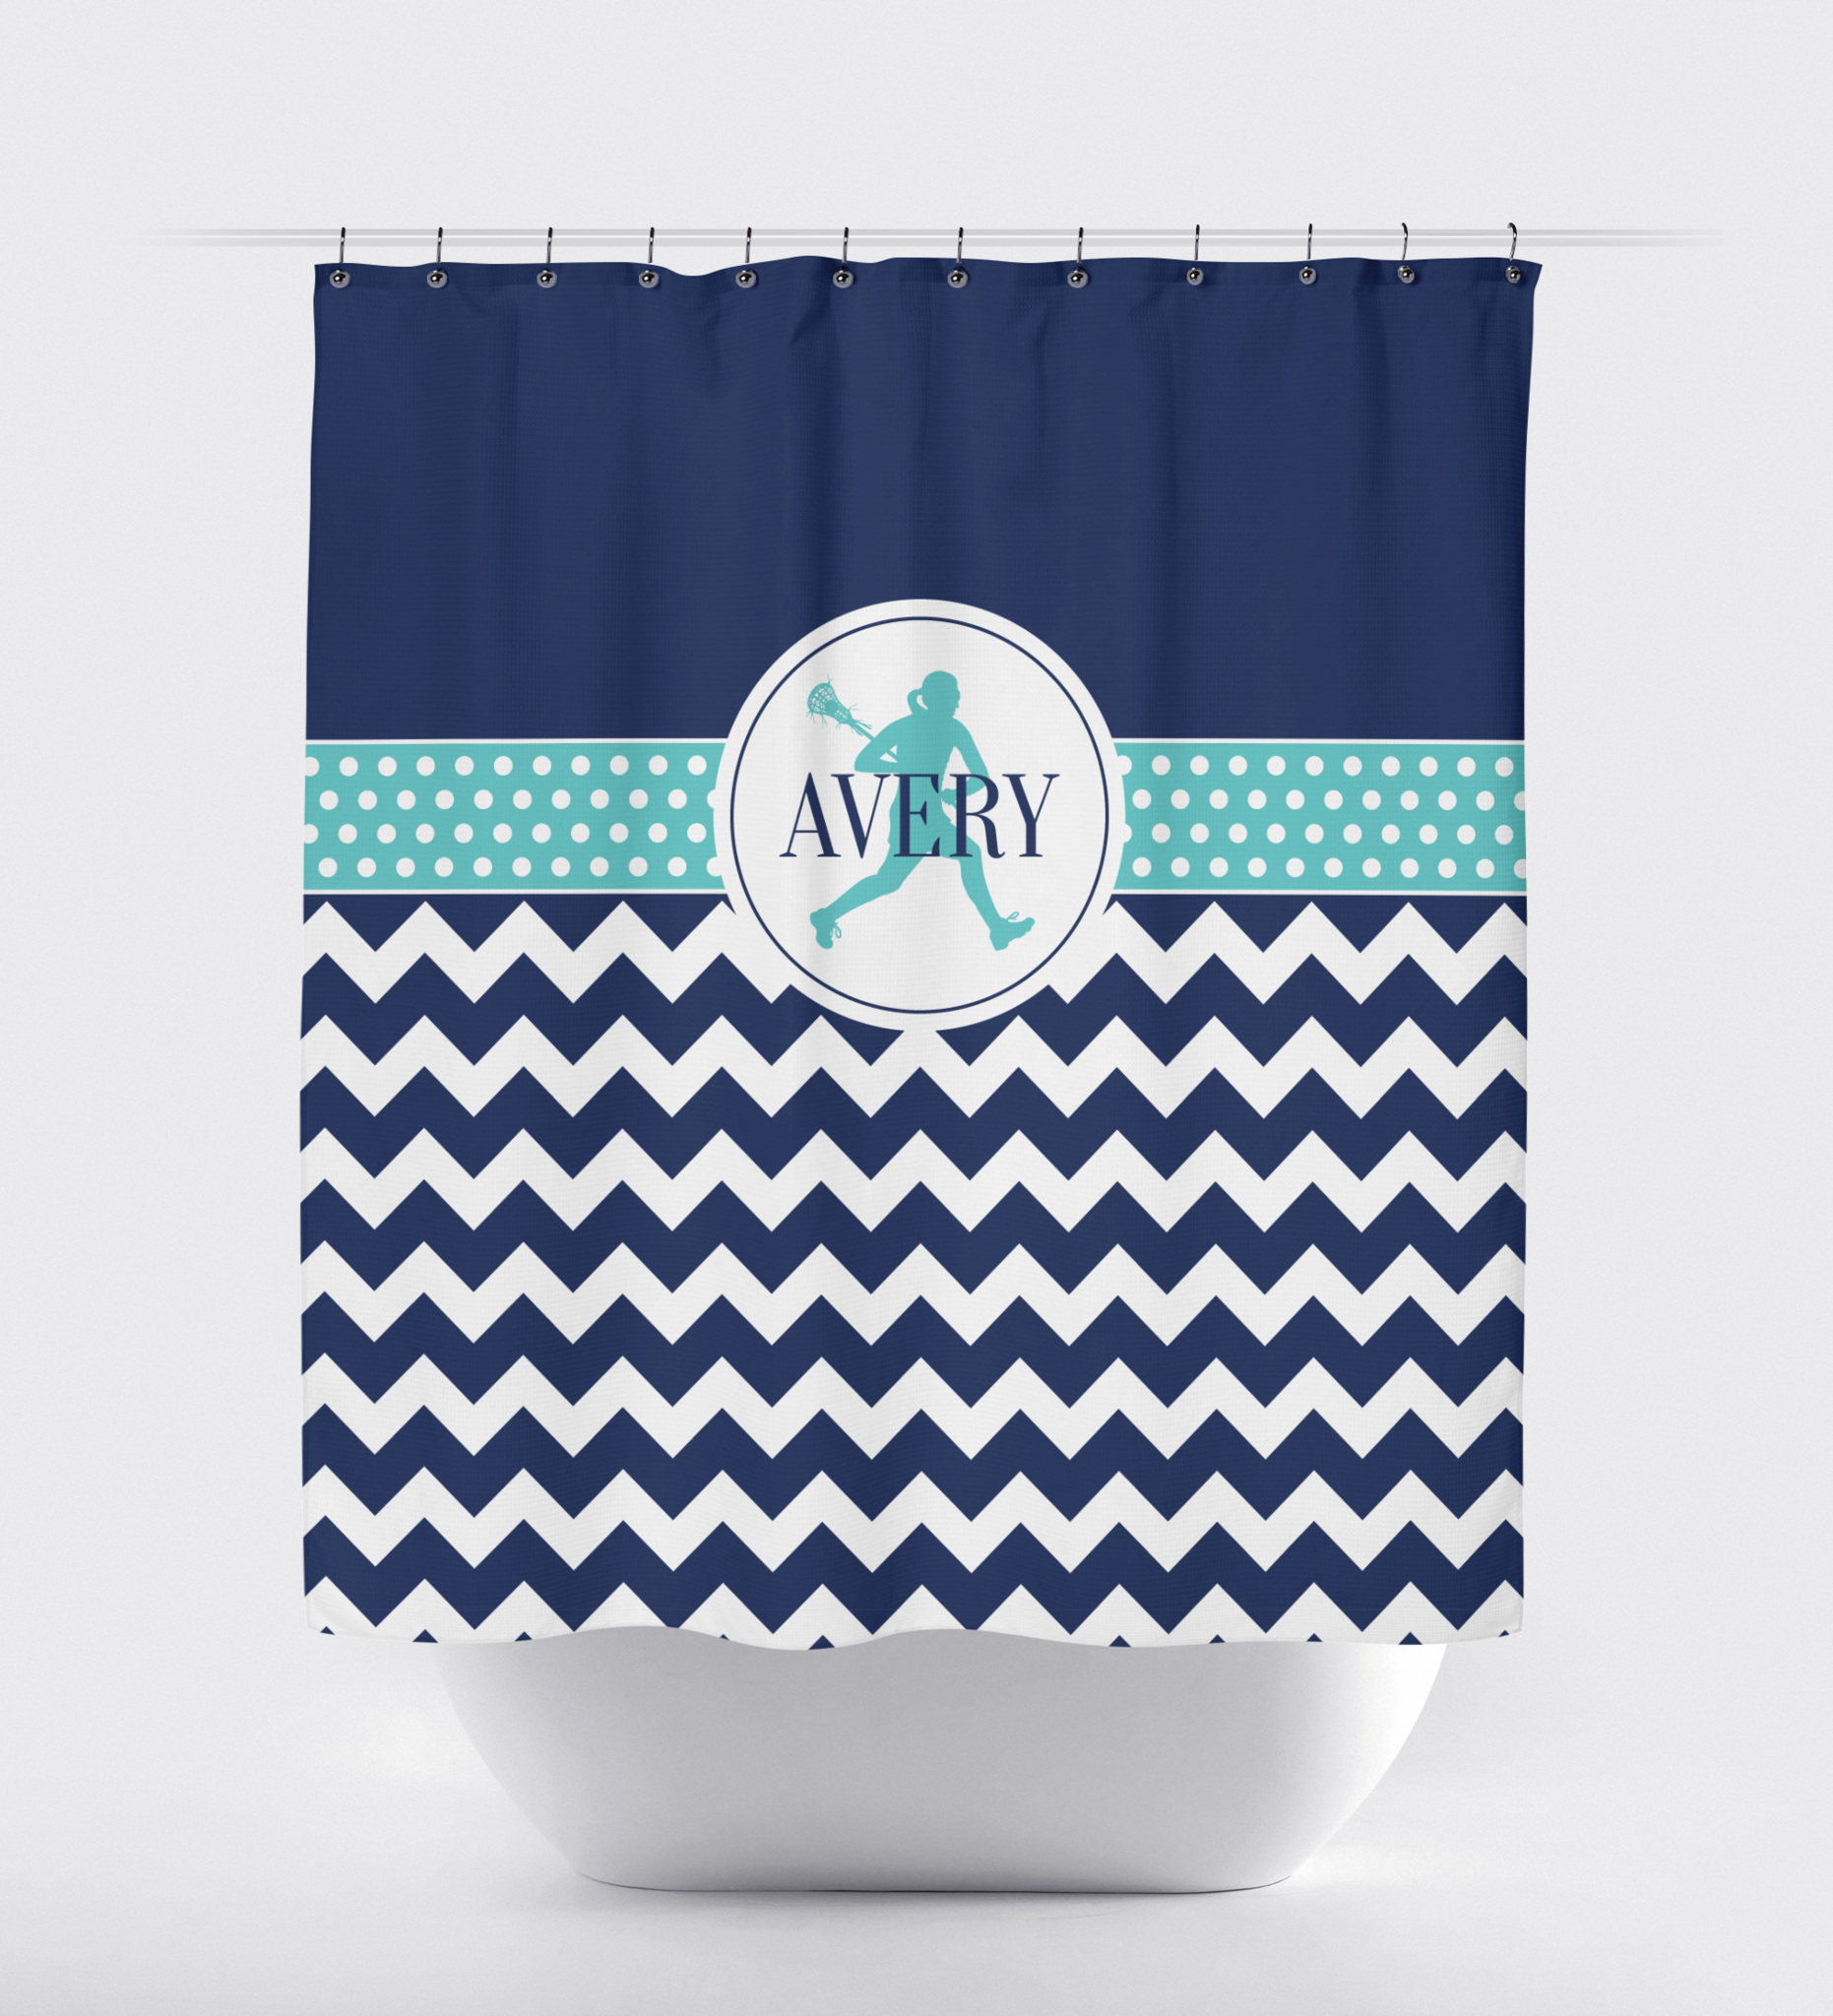 Custom Lacrosse Shower Curtain   Chevron and Polka Dots   LAX Player Gift  for Girls and  Custom Lacrosse Themed Shower Curtain for Girls   LAX   Shop  . Navy Blue And White Shower Curtain. Home Design Ideas